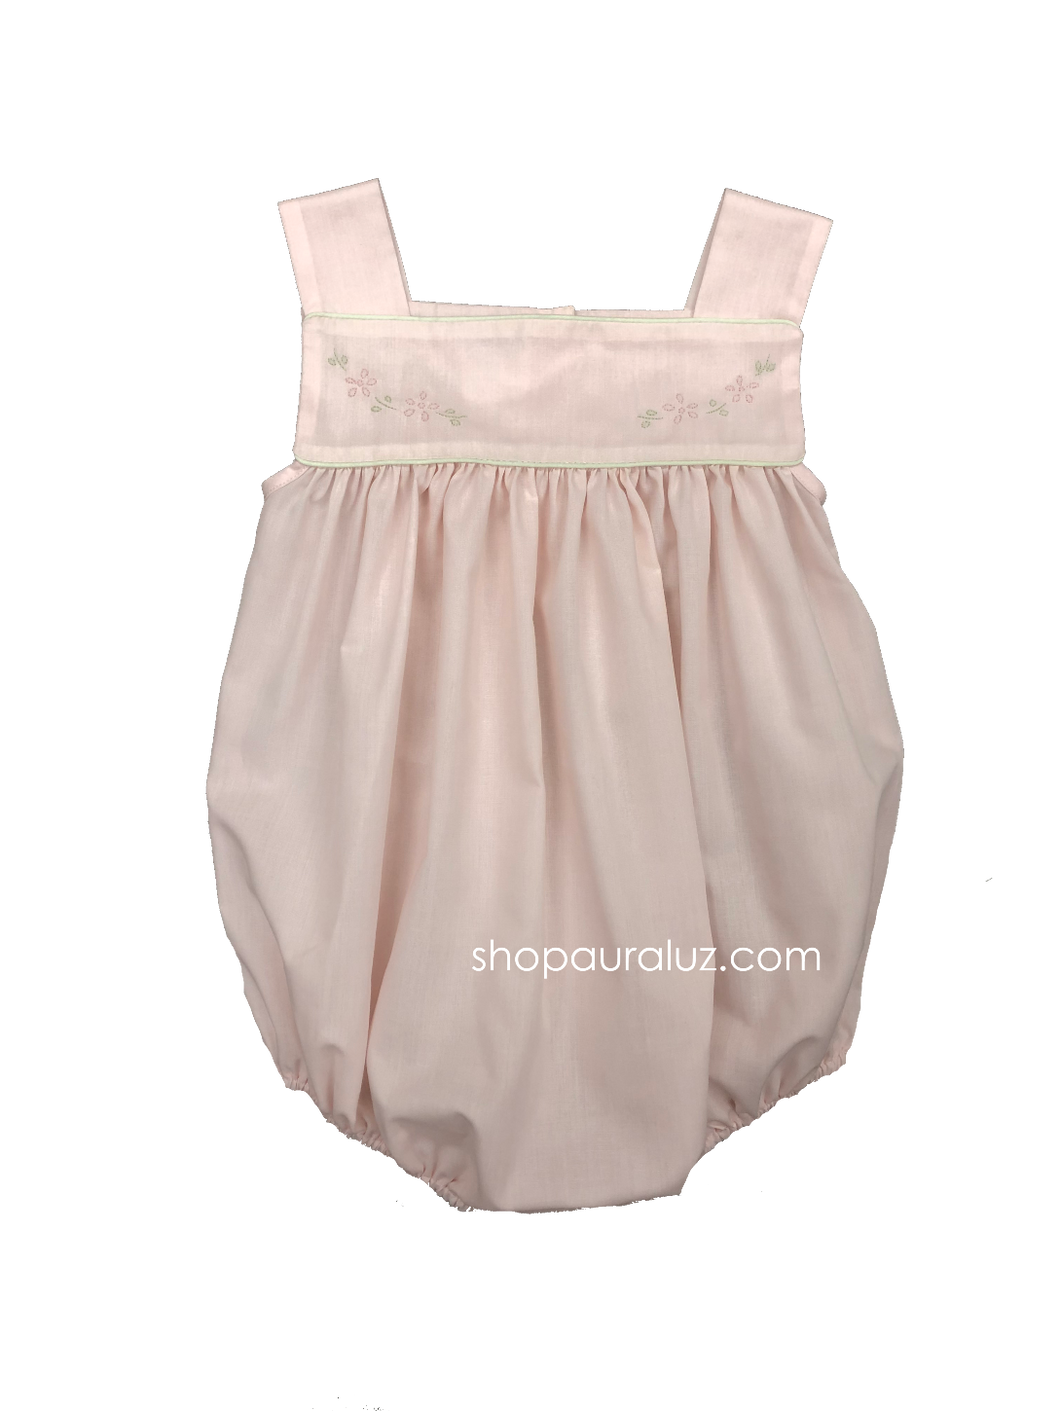 Auraluz Girl Sun Bubble...Pink with light green piping and embroidered flowers